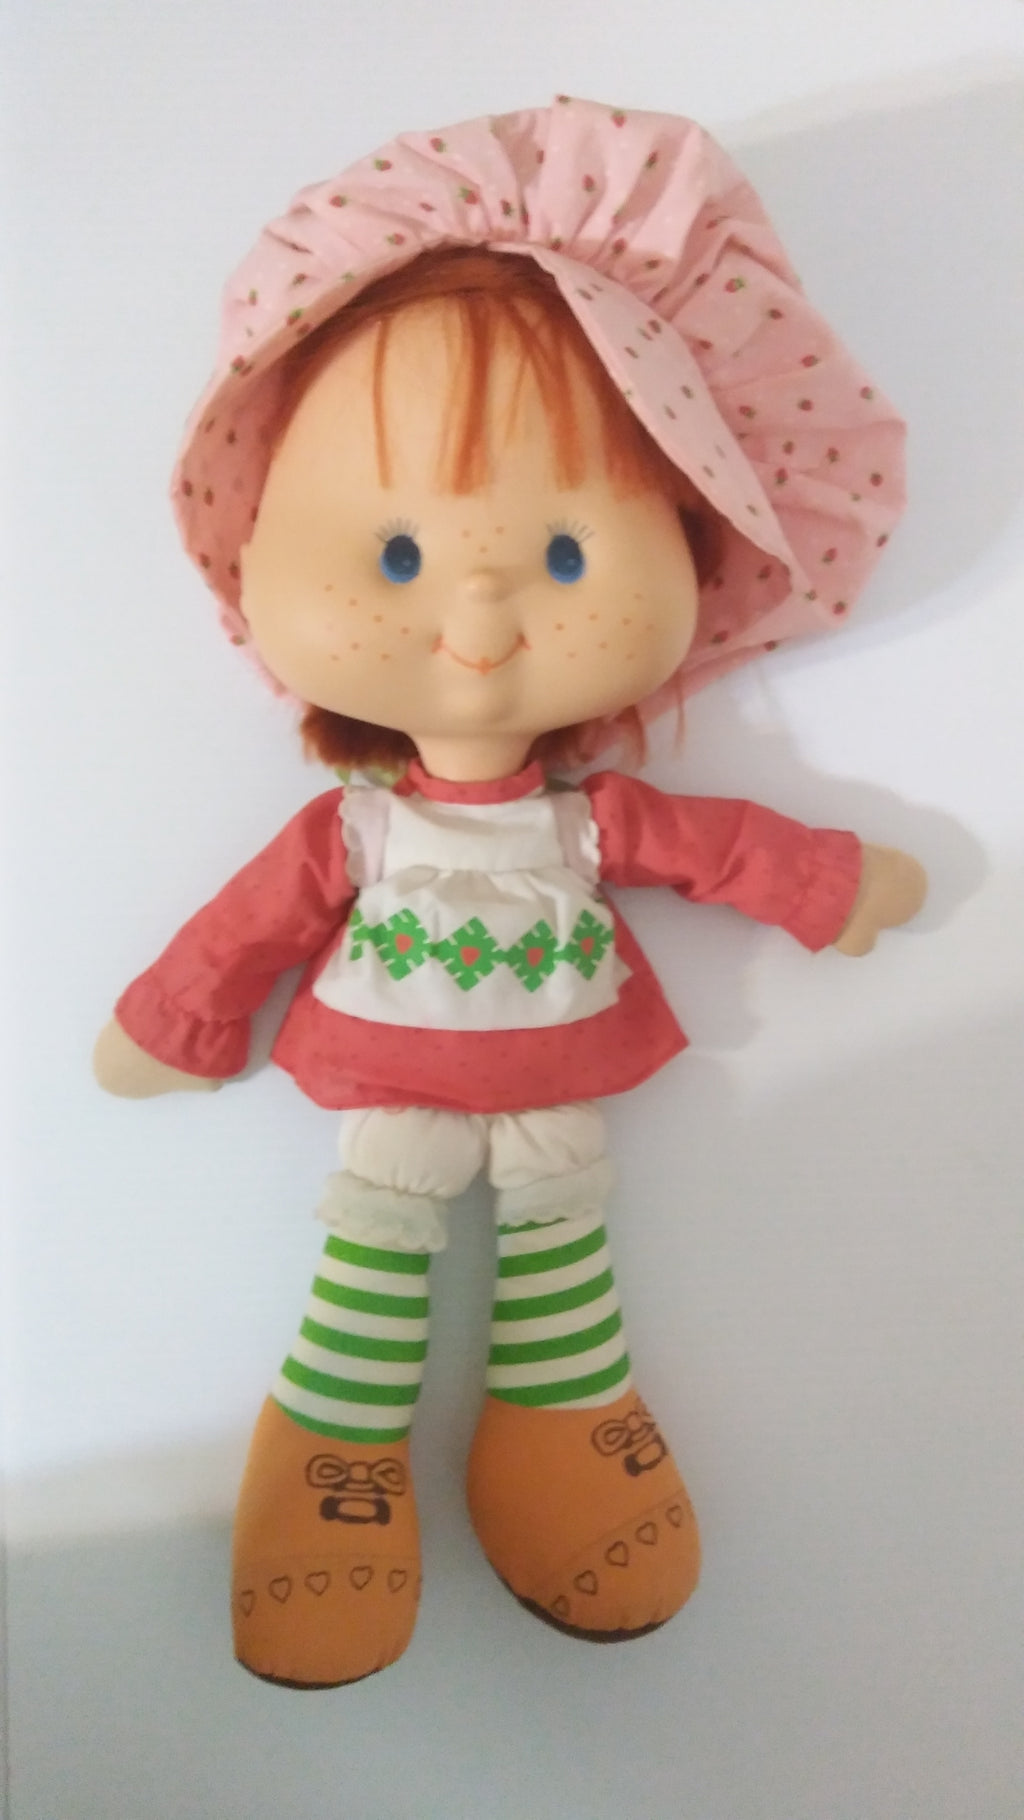 Strawberry Shortcake Big Head Doll-We Got Character